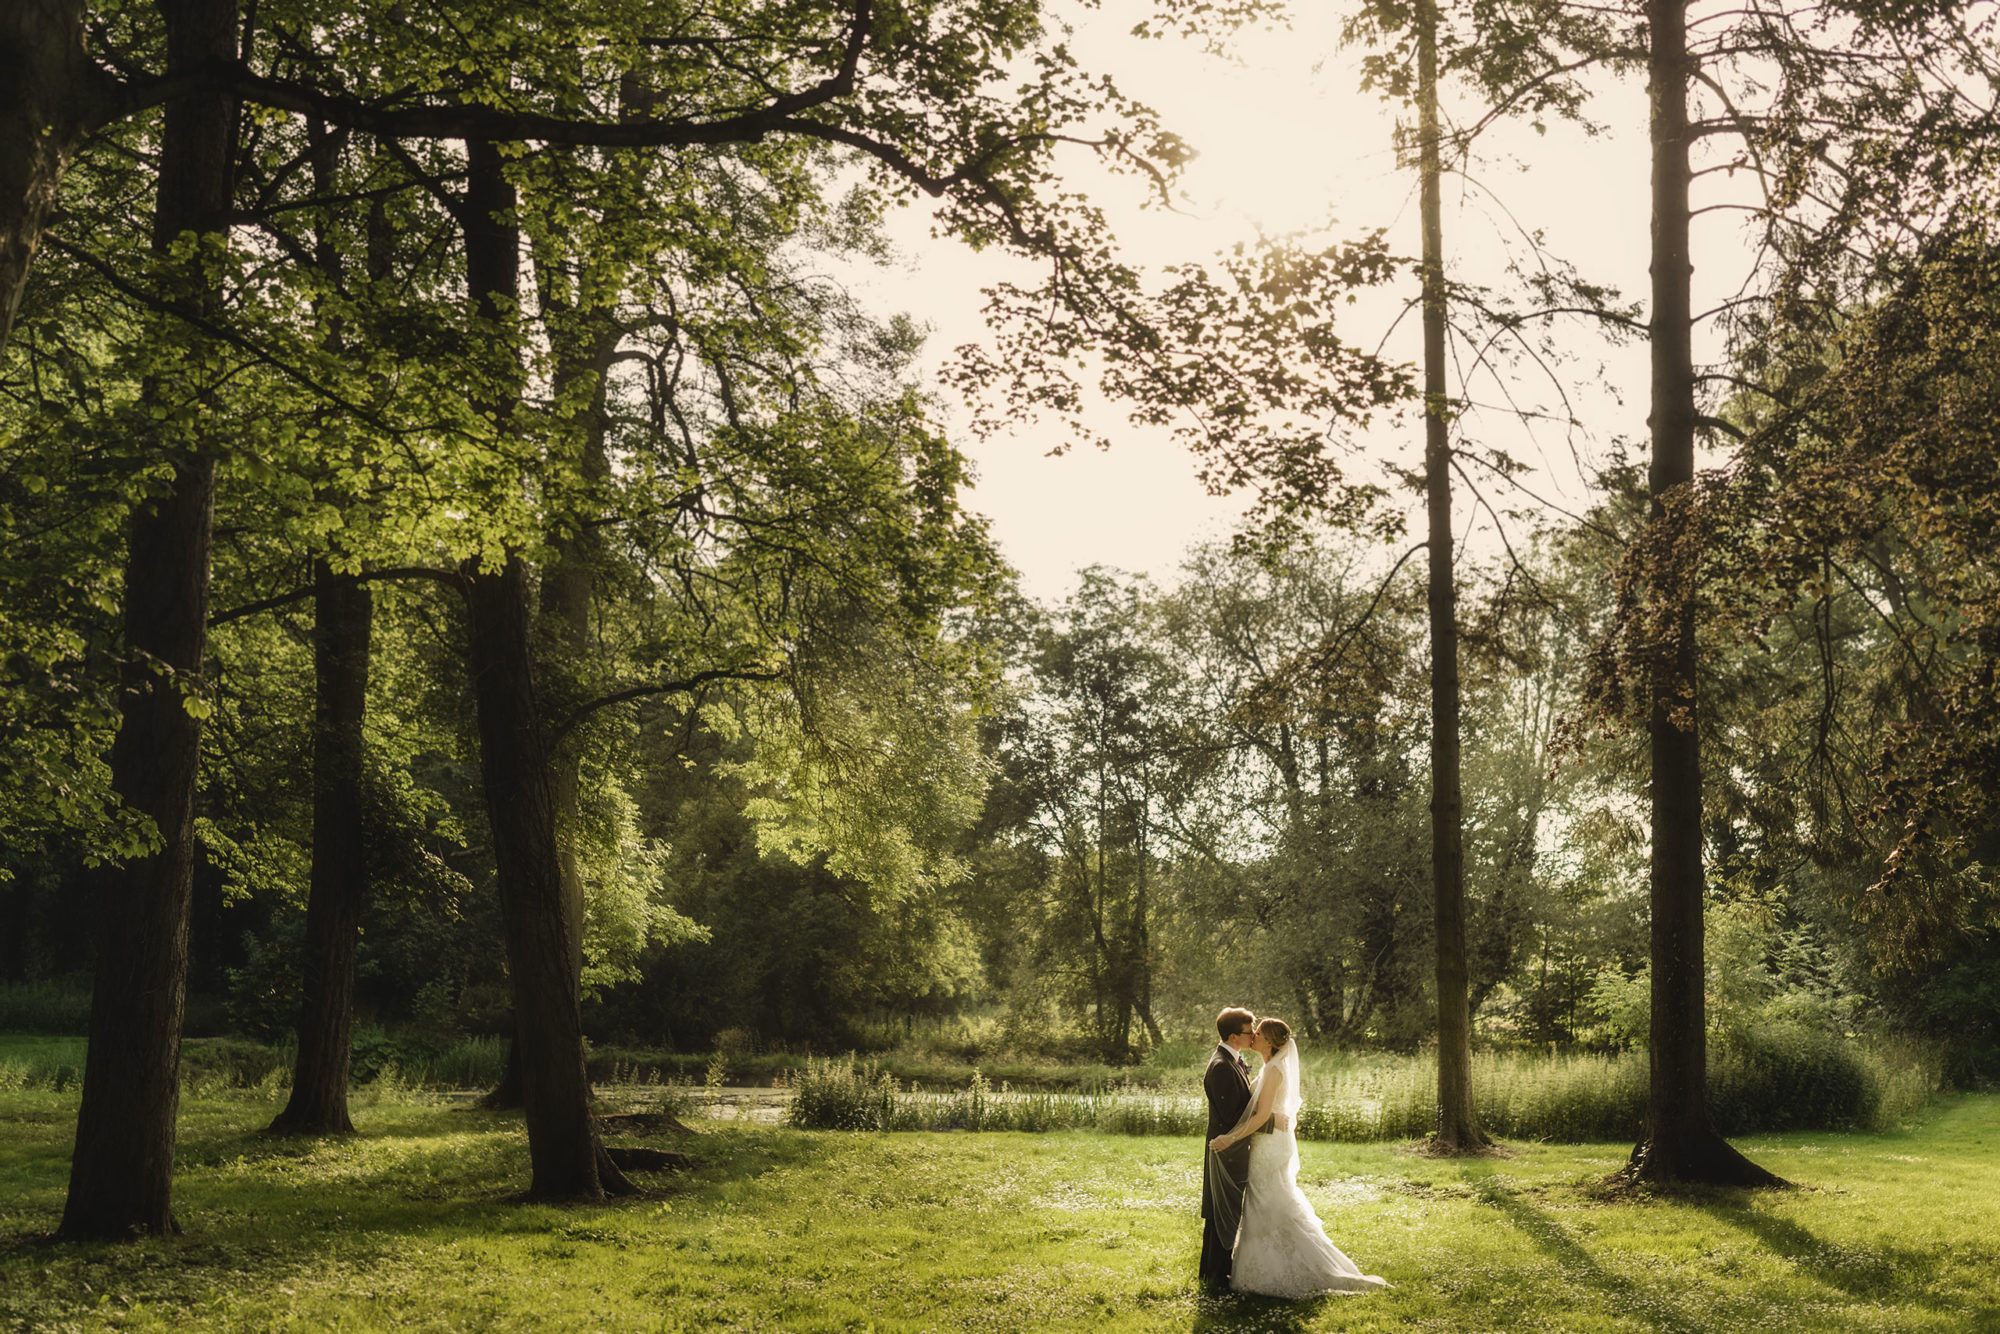 the bride and groom share an intimate moment in the grounds of Rowton Castle